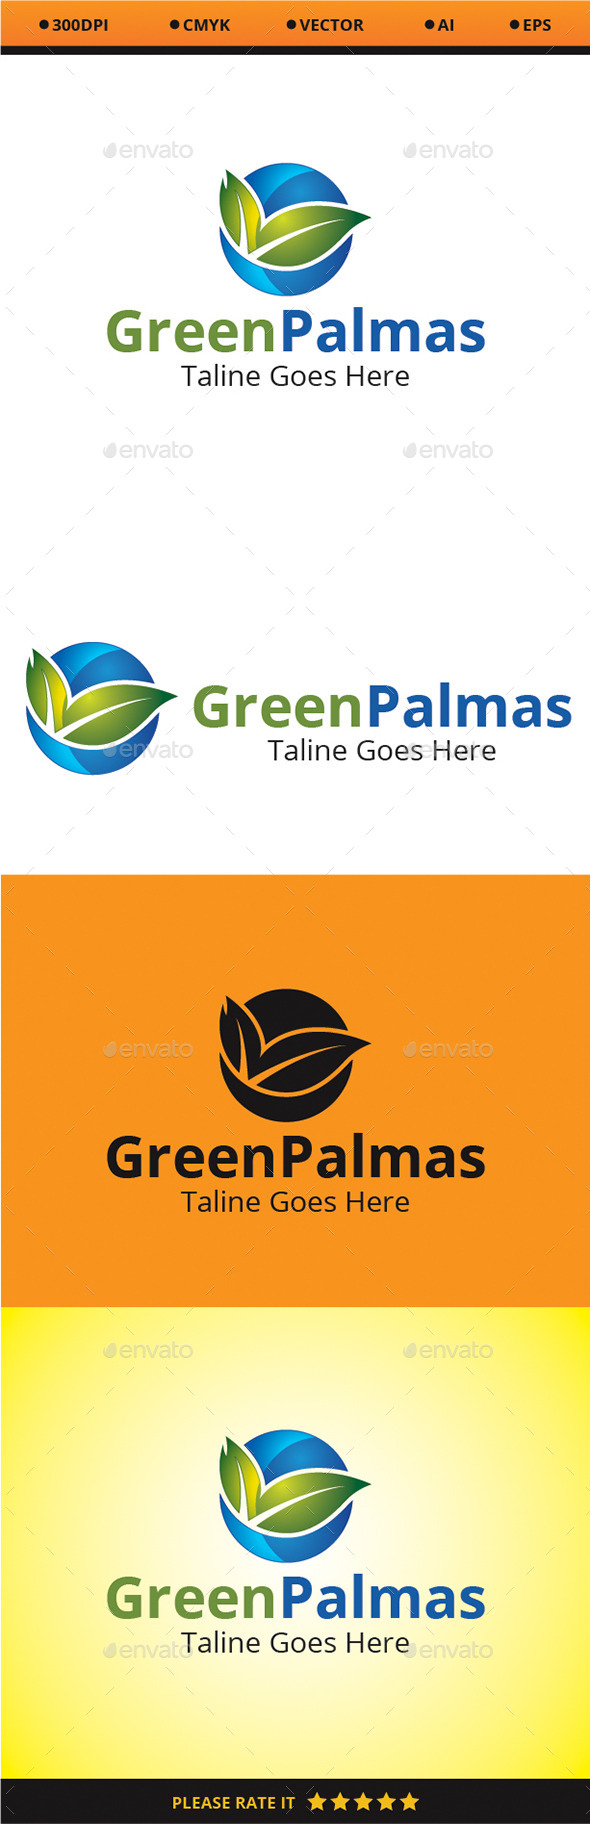 GraphicRiver Green Palmas 9663588